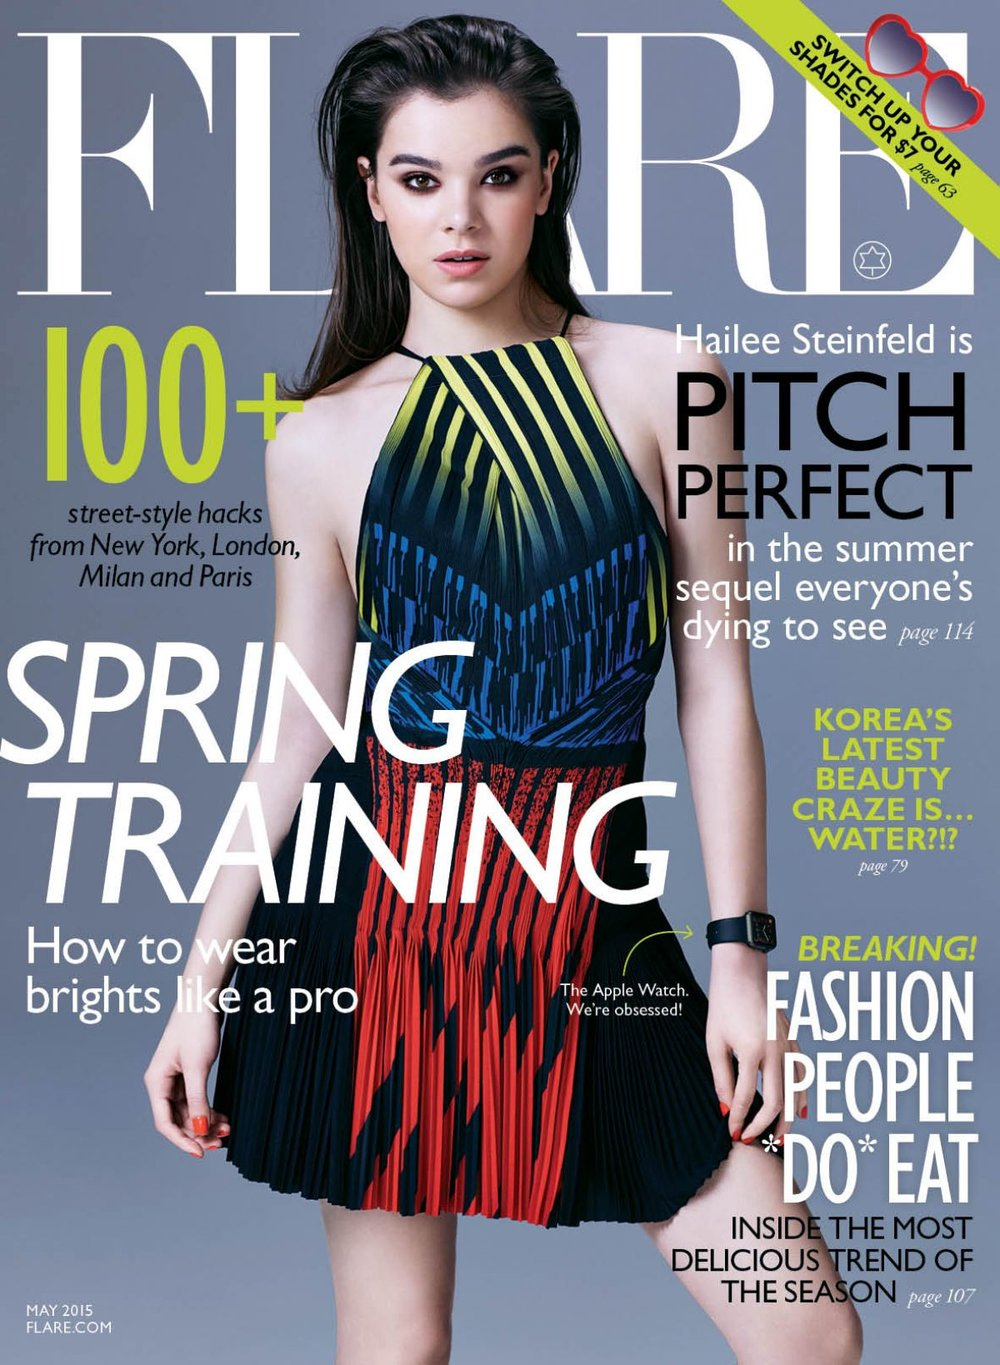 hailee-steinfeld-in-flare-magazine-may-2015-issue_2.jpg